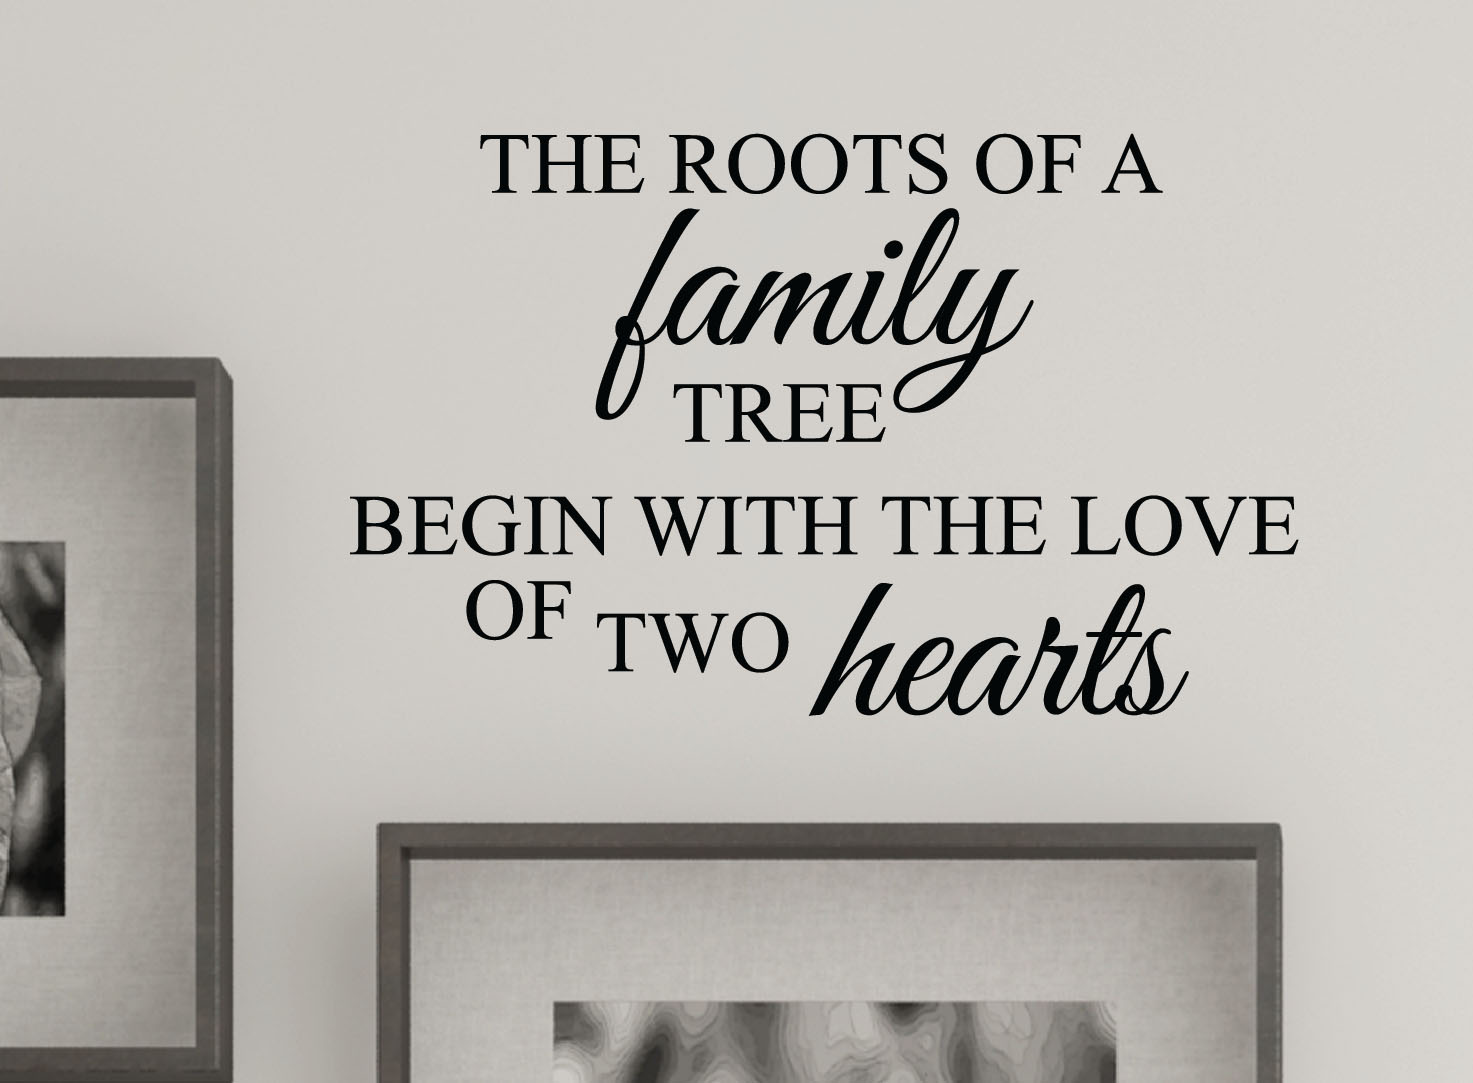 roots-of-a-family-tree-love-wall-decal-quote-picture-frames-black.jpg